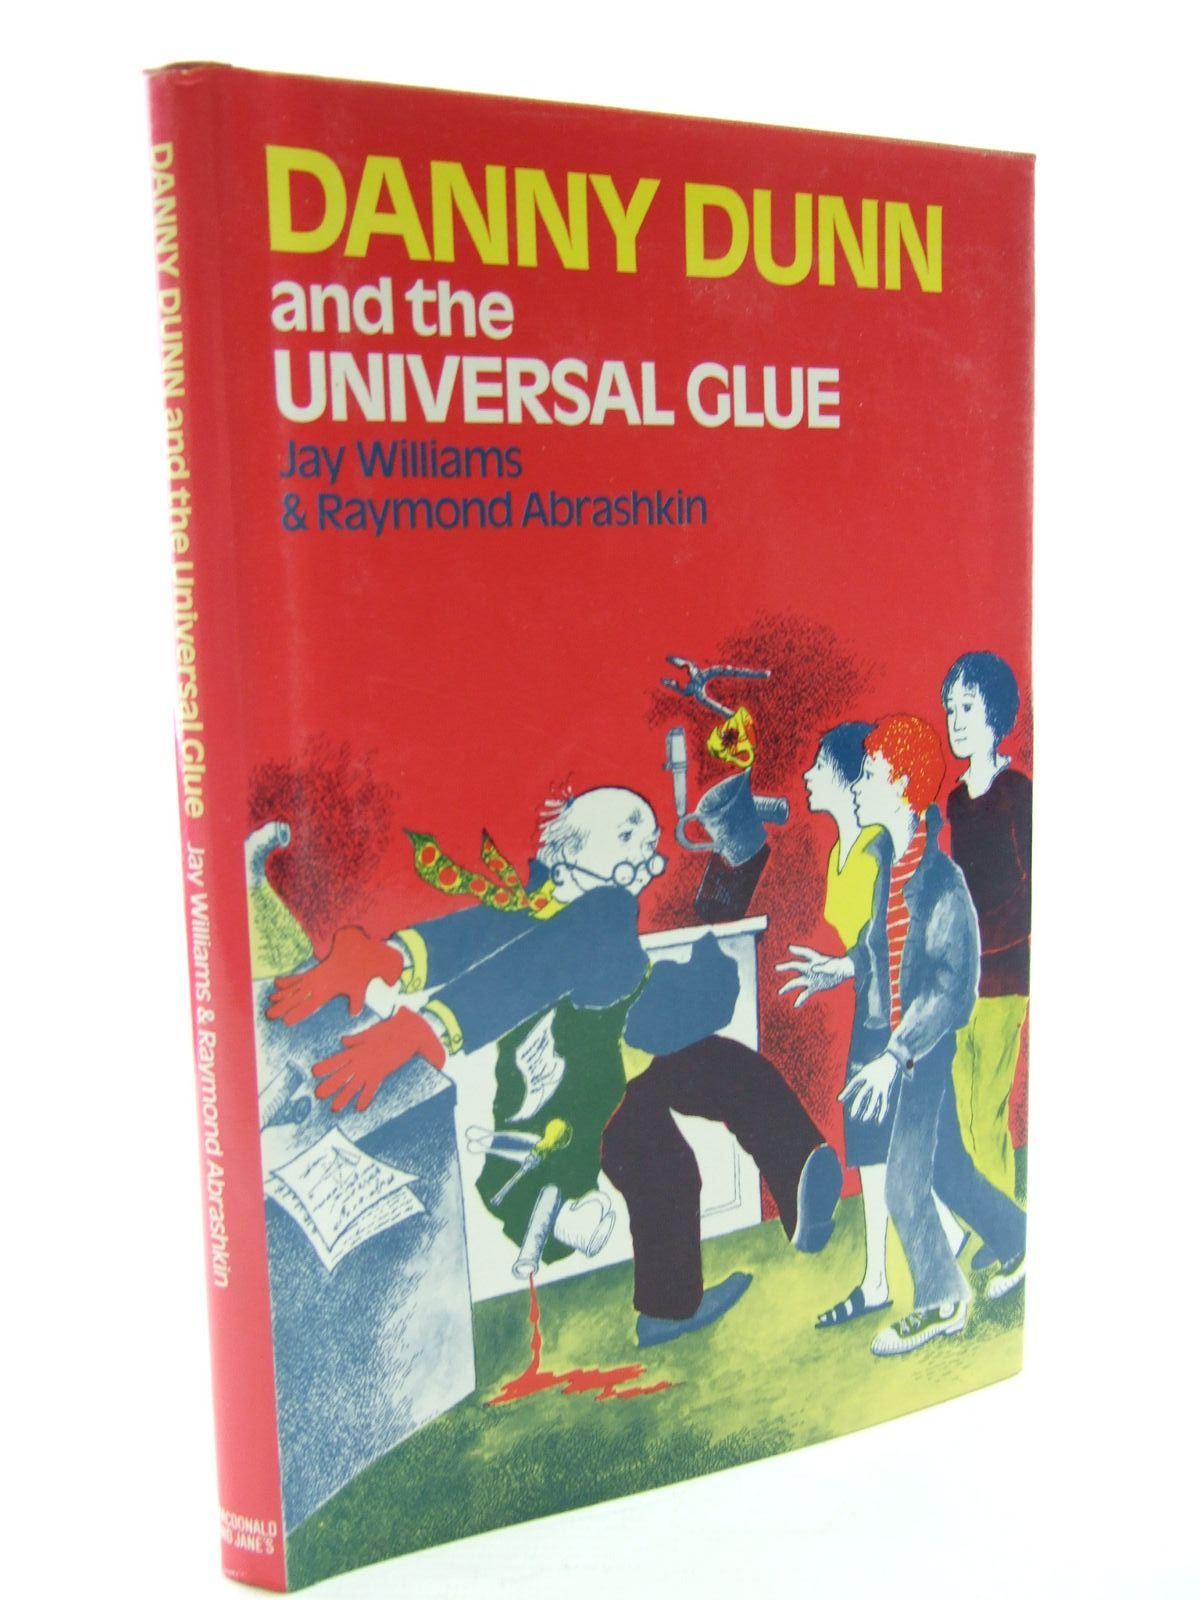 Photo of DANNY DUNN AND THE UNIVERSAL GLUE written by Williams, Jay Abrashkin, Raymond illustrated by Mieke, Anne published by Macdonald and Jane's (STOCK CODE: 2107188)  for sale by Stella & Rose's Books